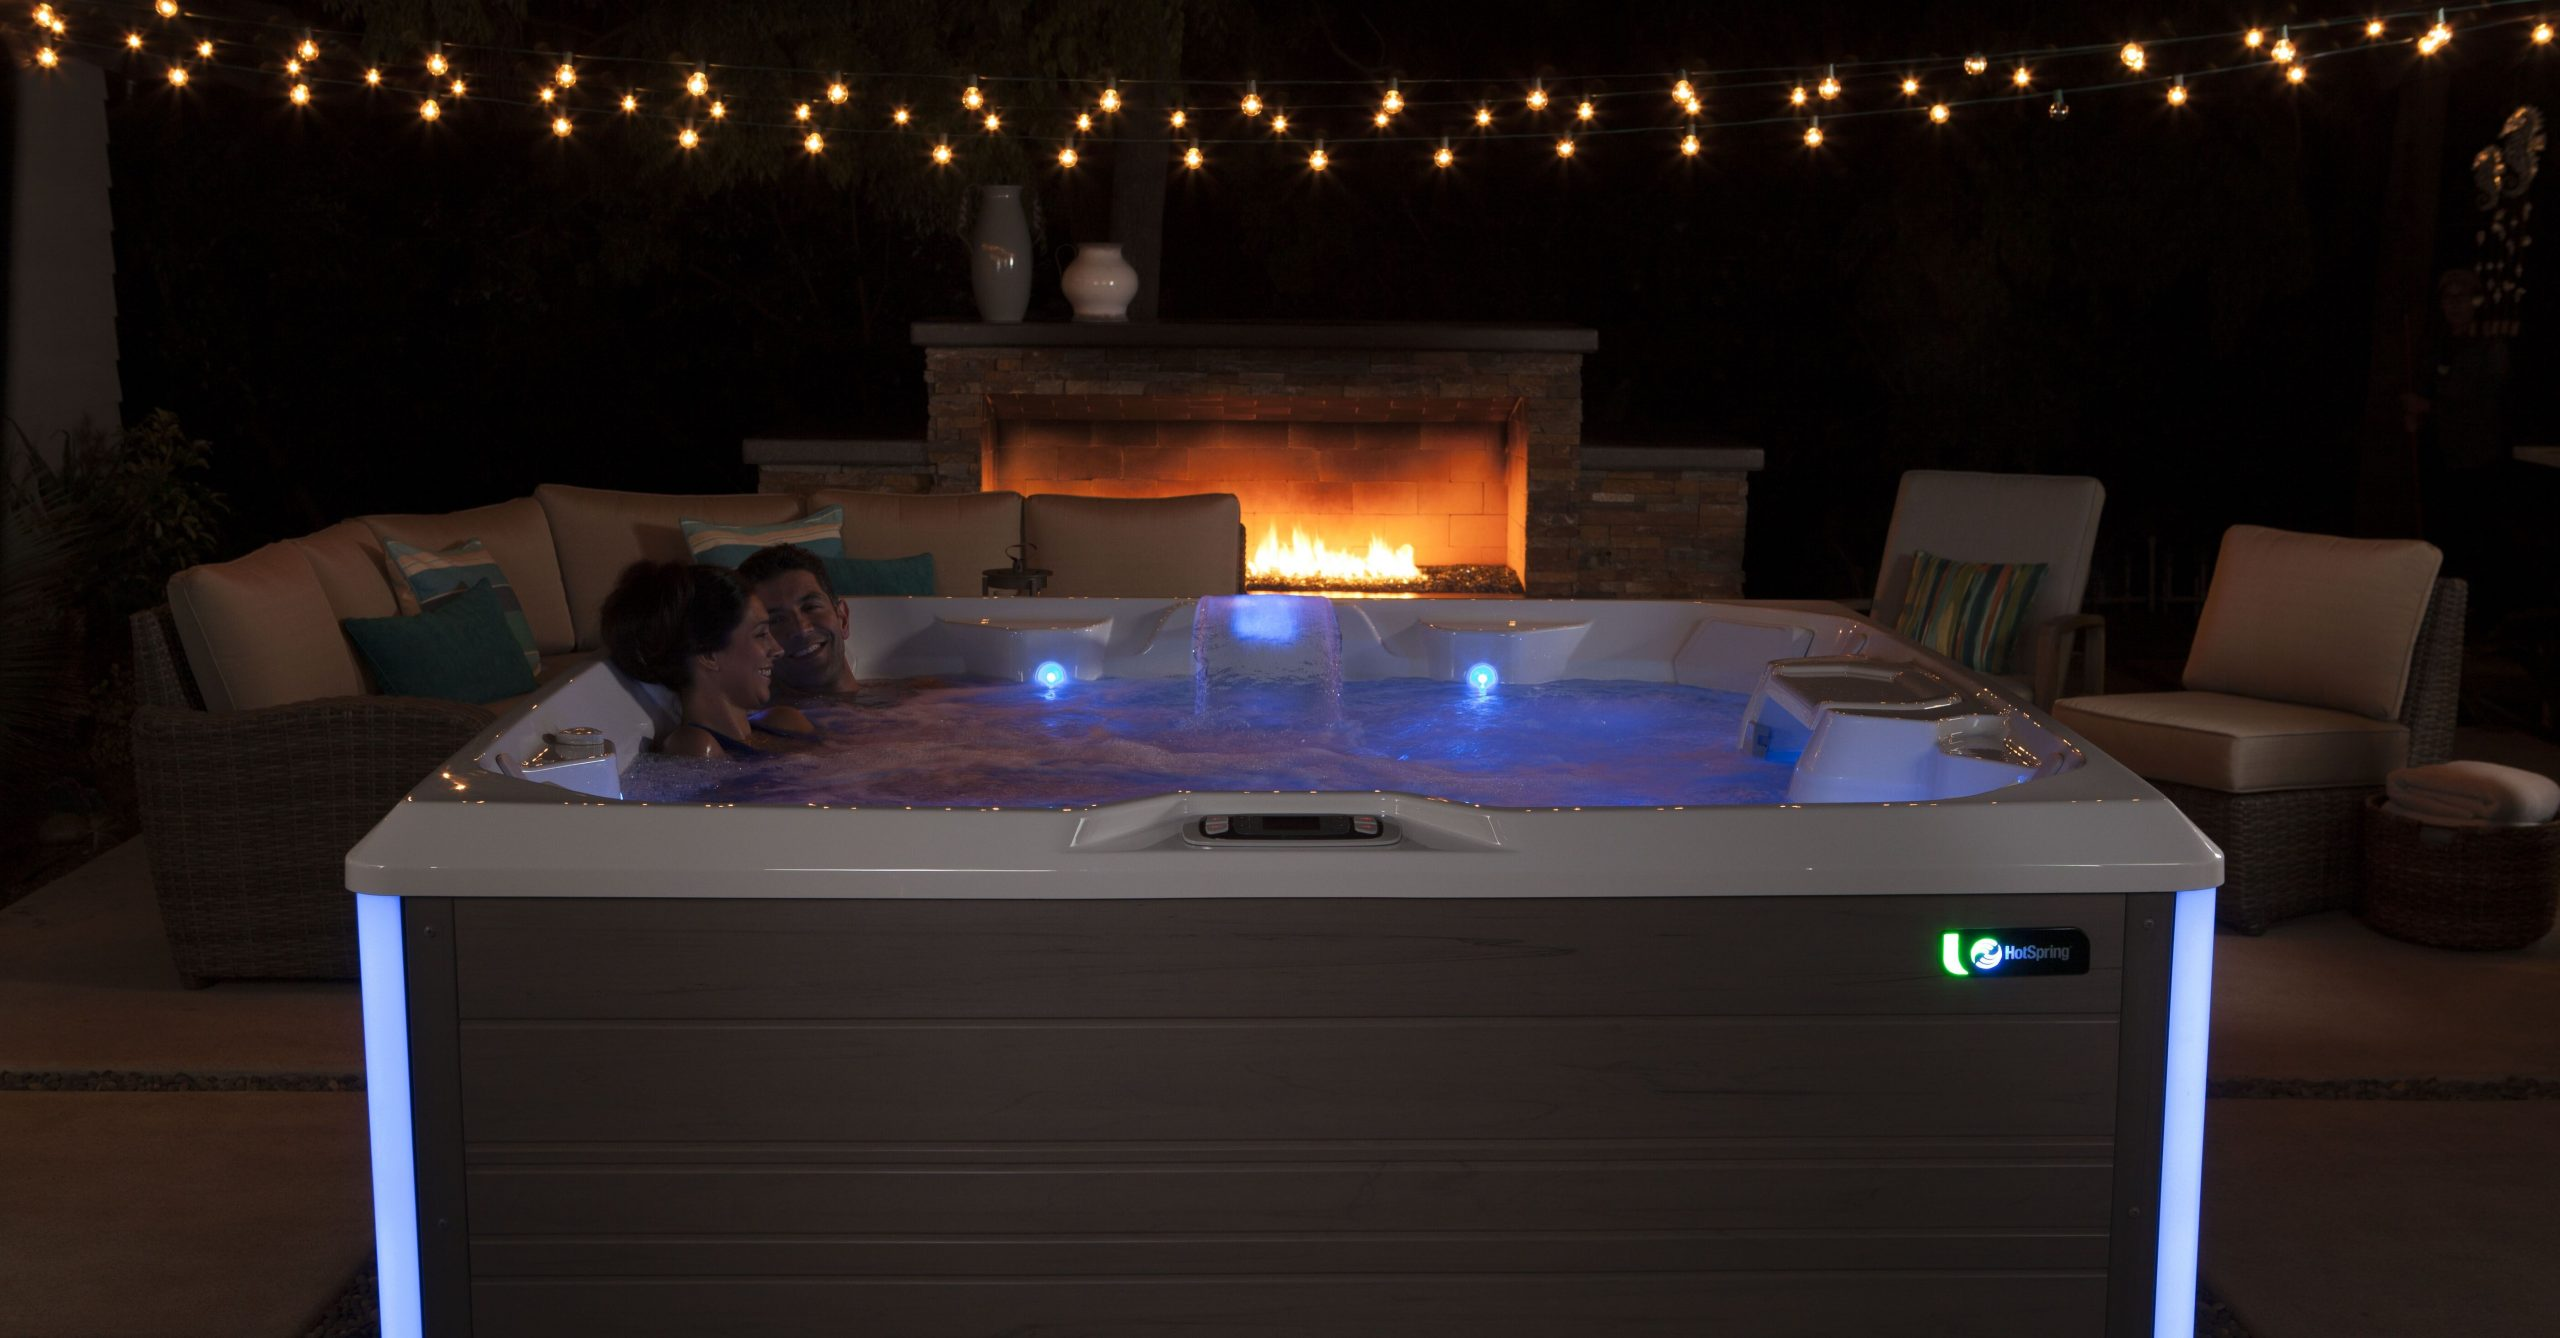 How to Create a Private Resort Vibe With a Hot Tub